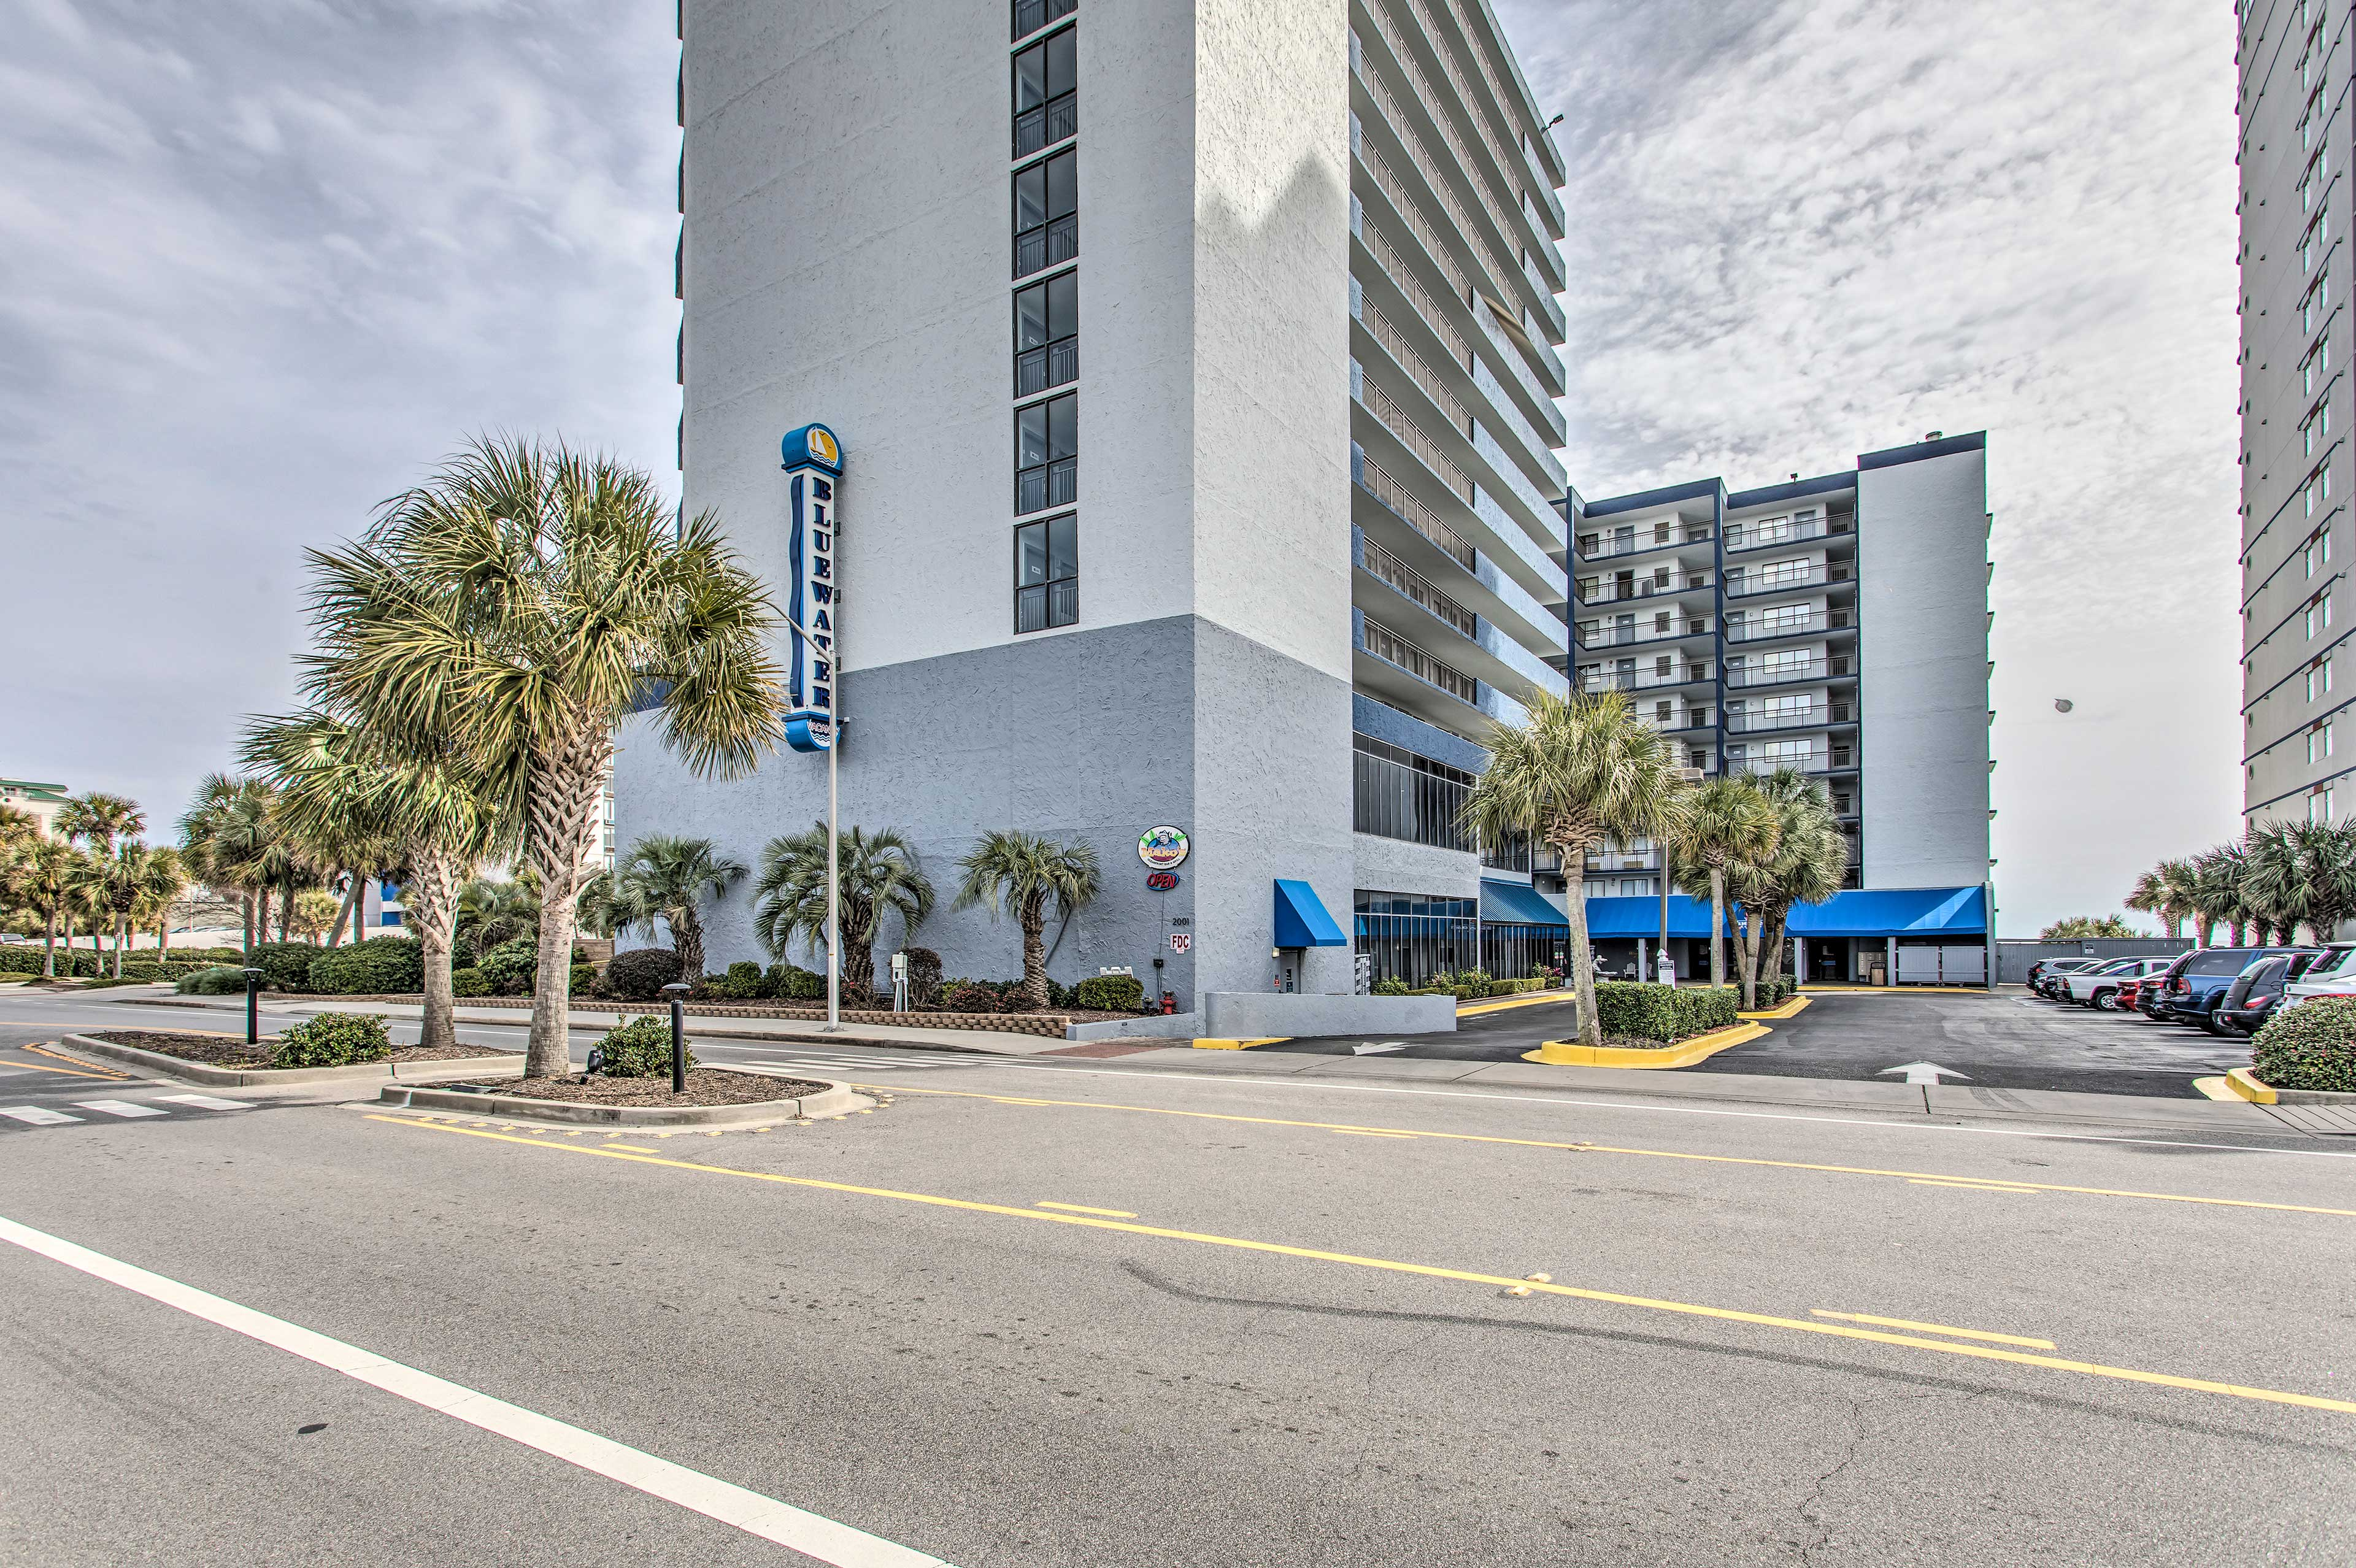 Condo Exterior | 2 Complimentary Parking Passes for Parking